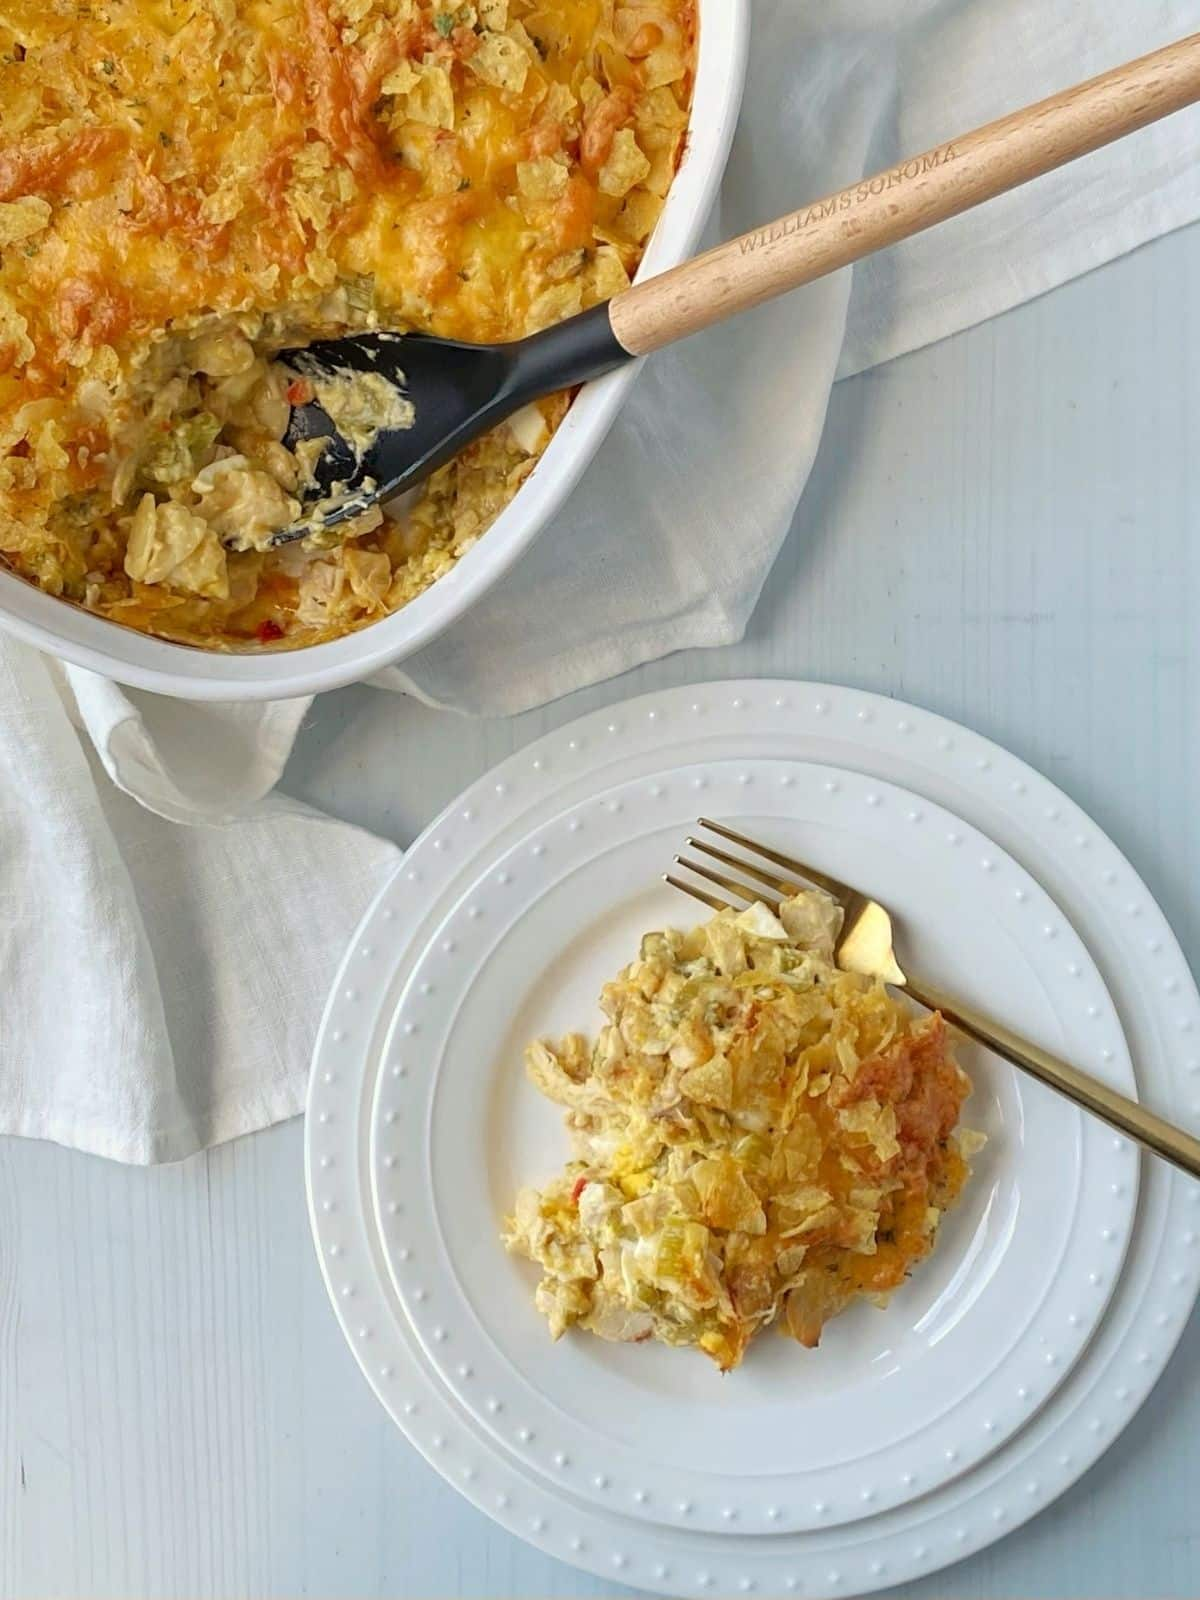 serving of casserole on a white plate next to the casserole dish